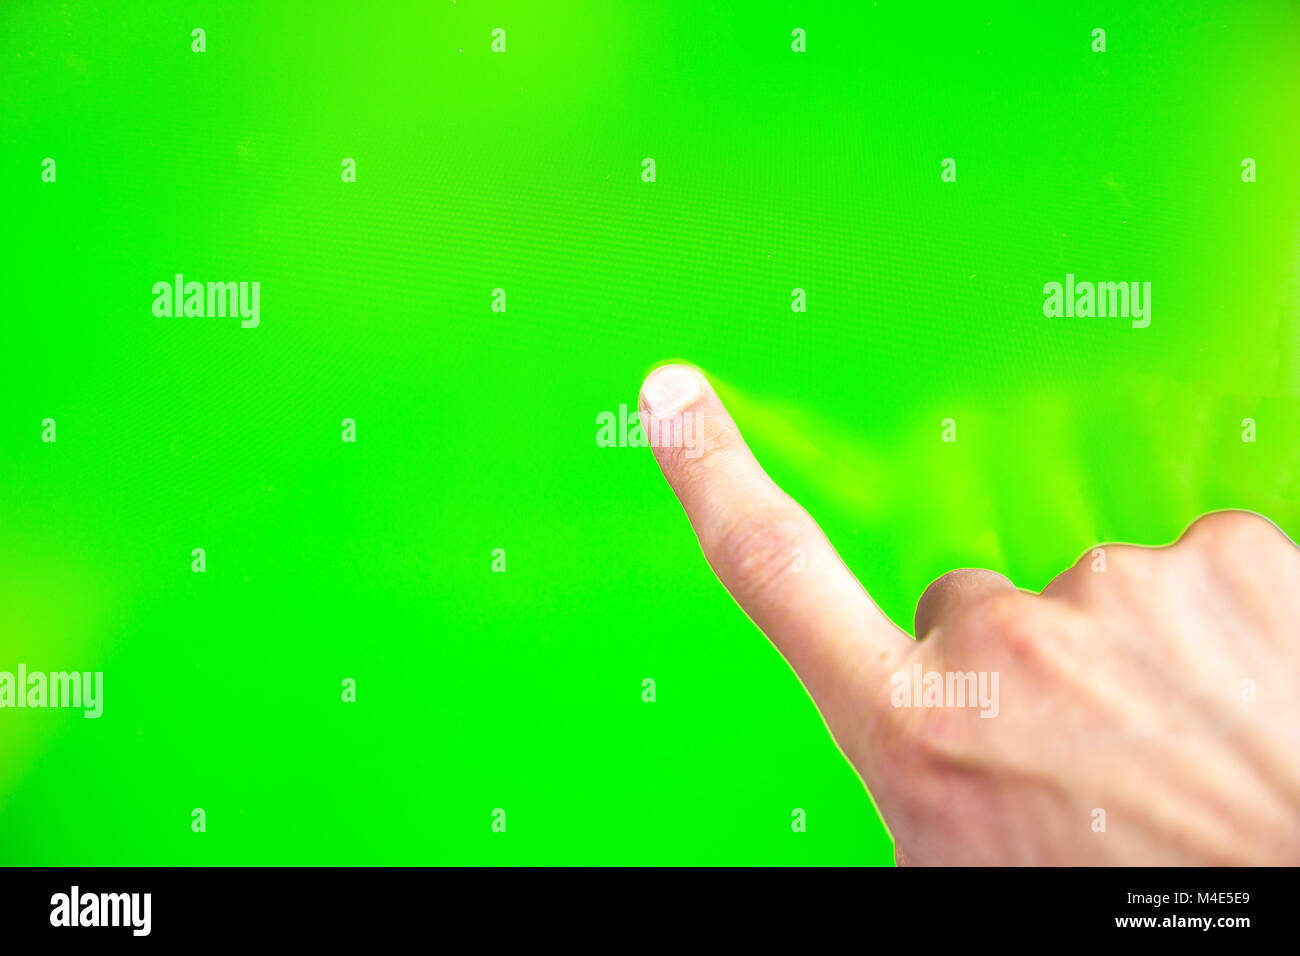 Digital green screen man hand - Stock Image